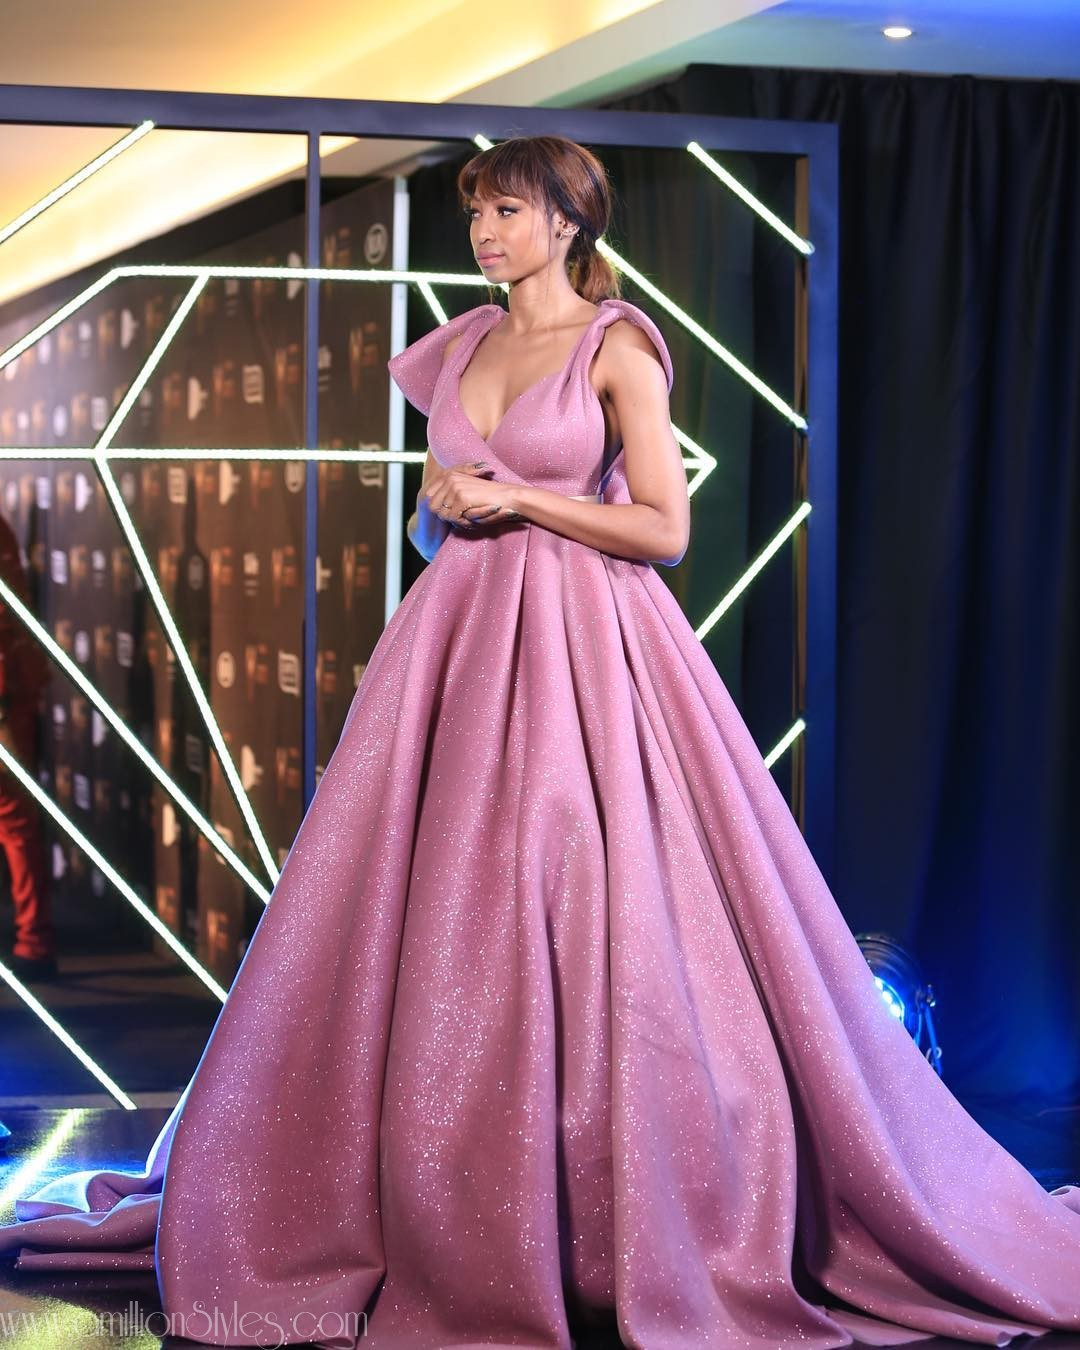 The Best Looks From The 2018 DSTV Mzansi Viewers Choice Award